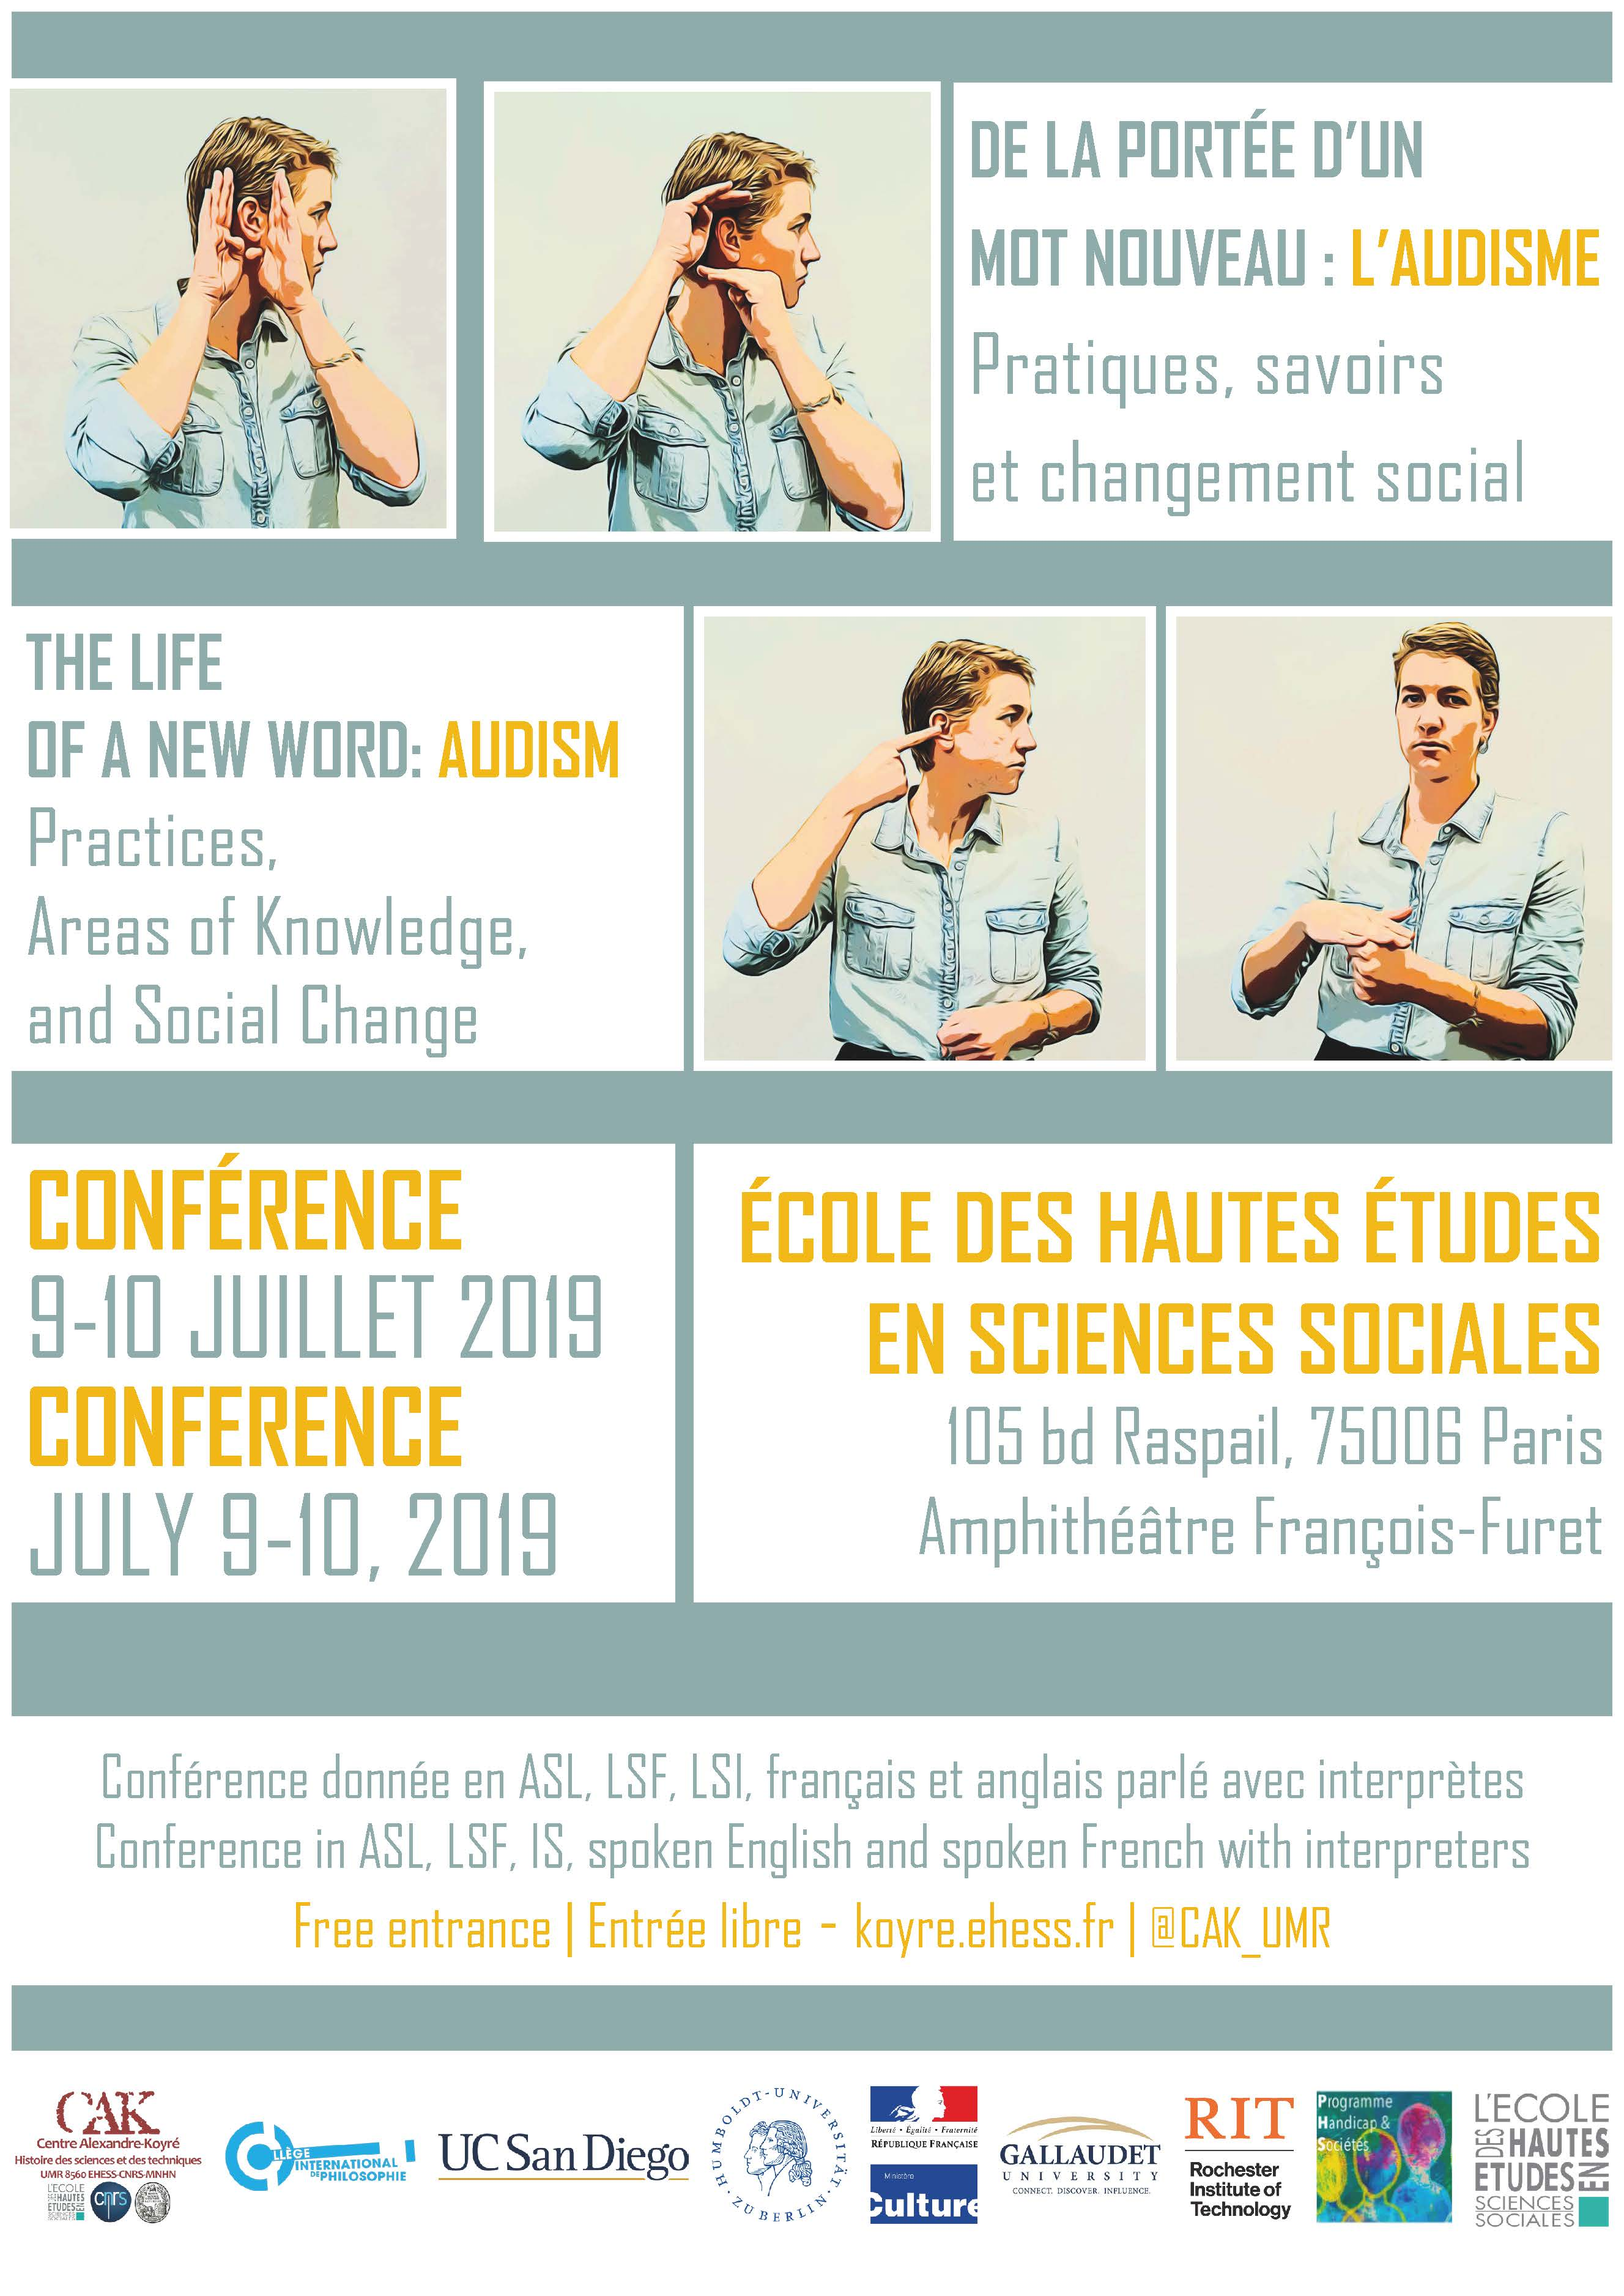 Conférence - De la portée d'un mot nouveau : l'audisme. Pratiques, savoirs et changement social / The life of a new word: Audism. Practices, areas of knowledge, and social change